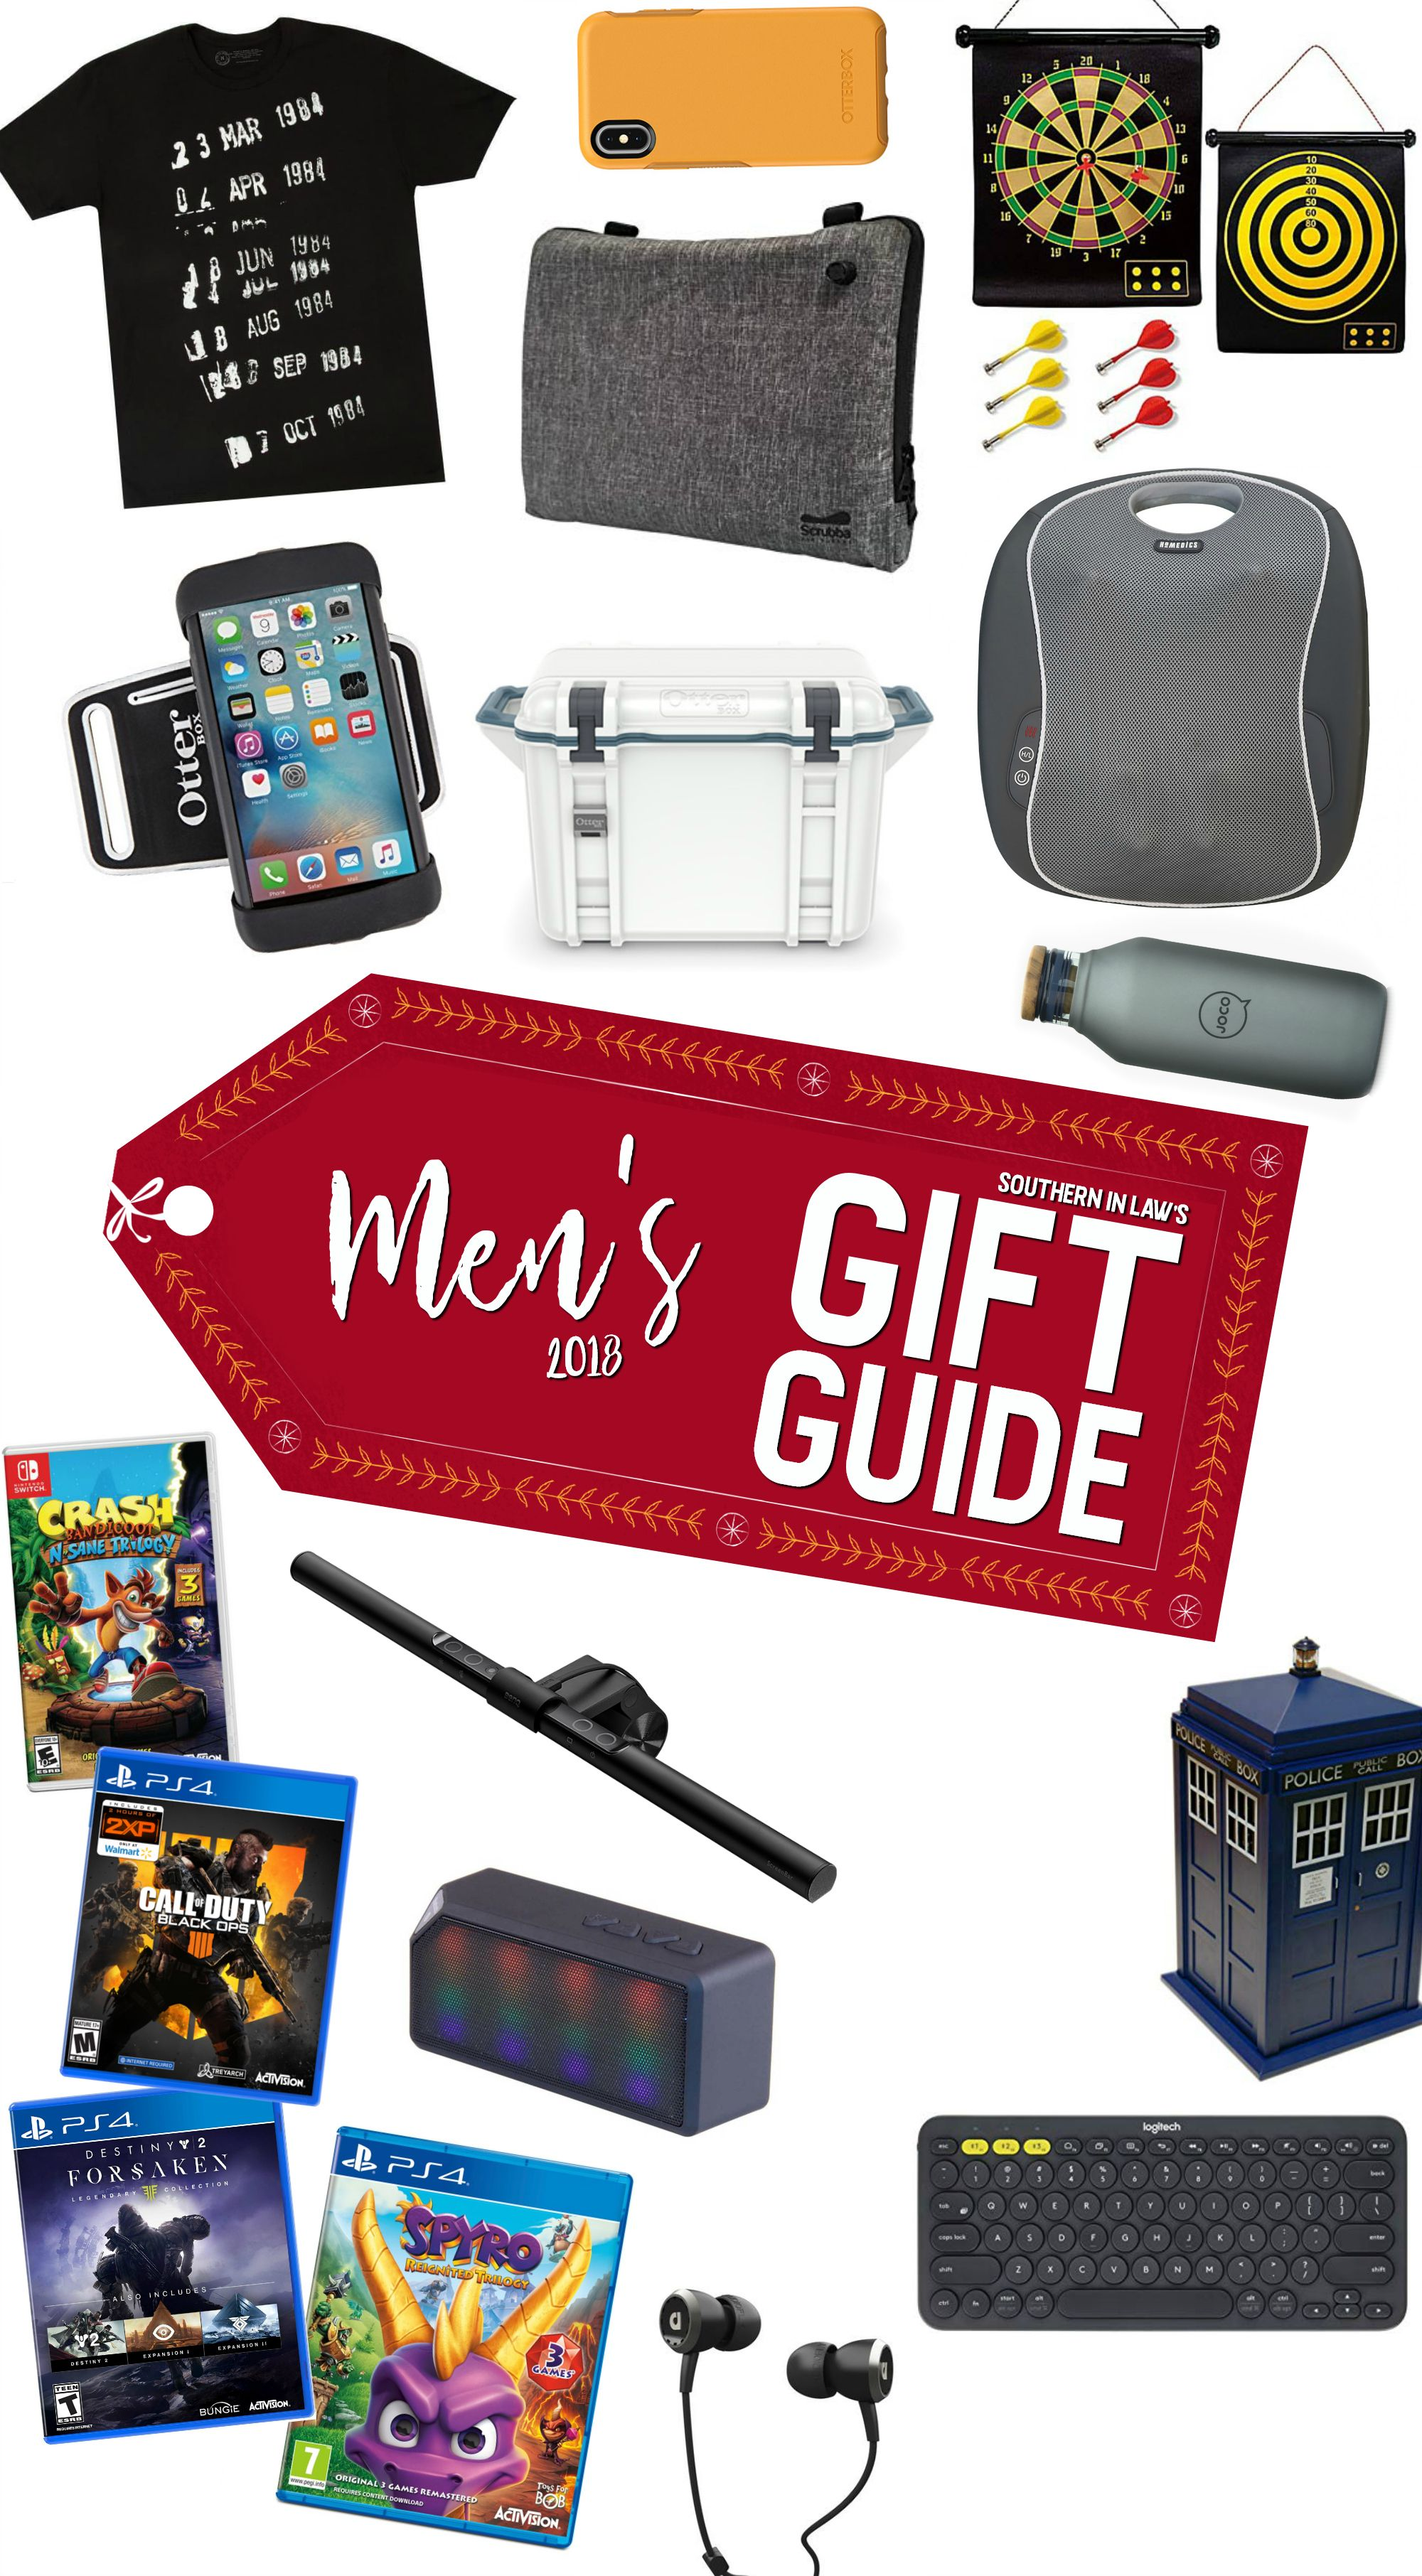 Discussion on this topic: Men's Tech And Gadgets Christmas Gift Guide , mens-tech-and-gadgets-christmas-gift-guide/